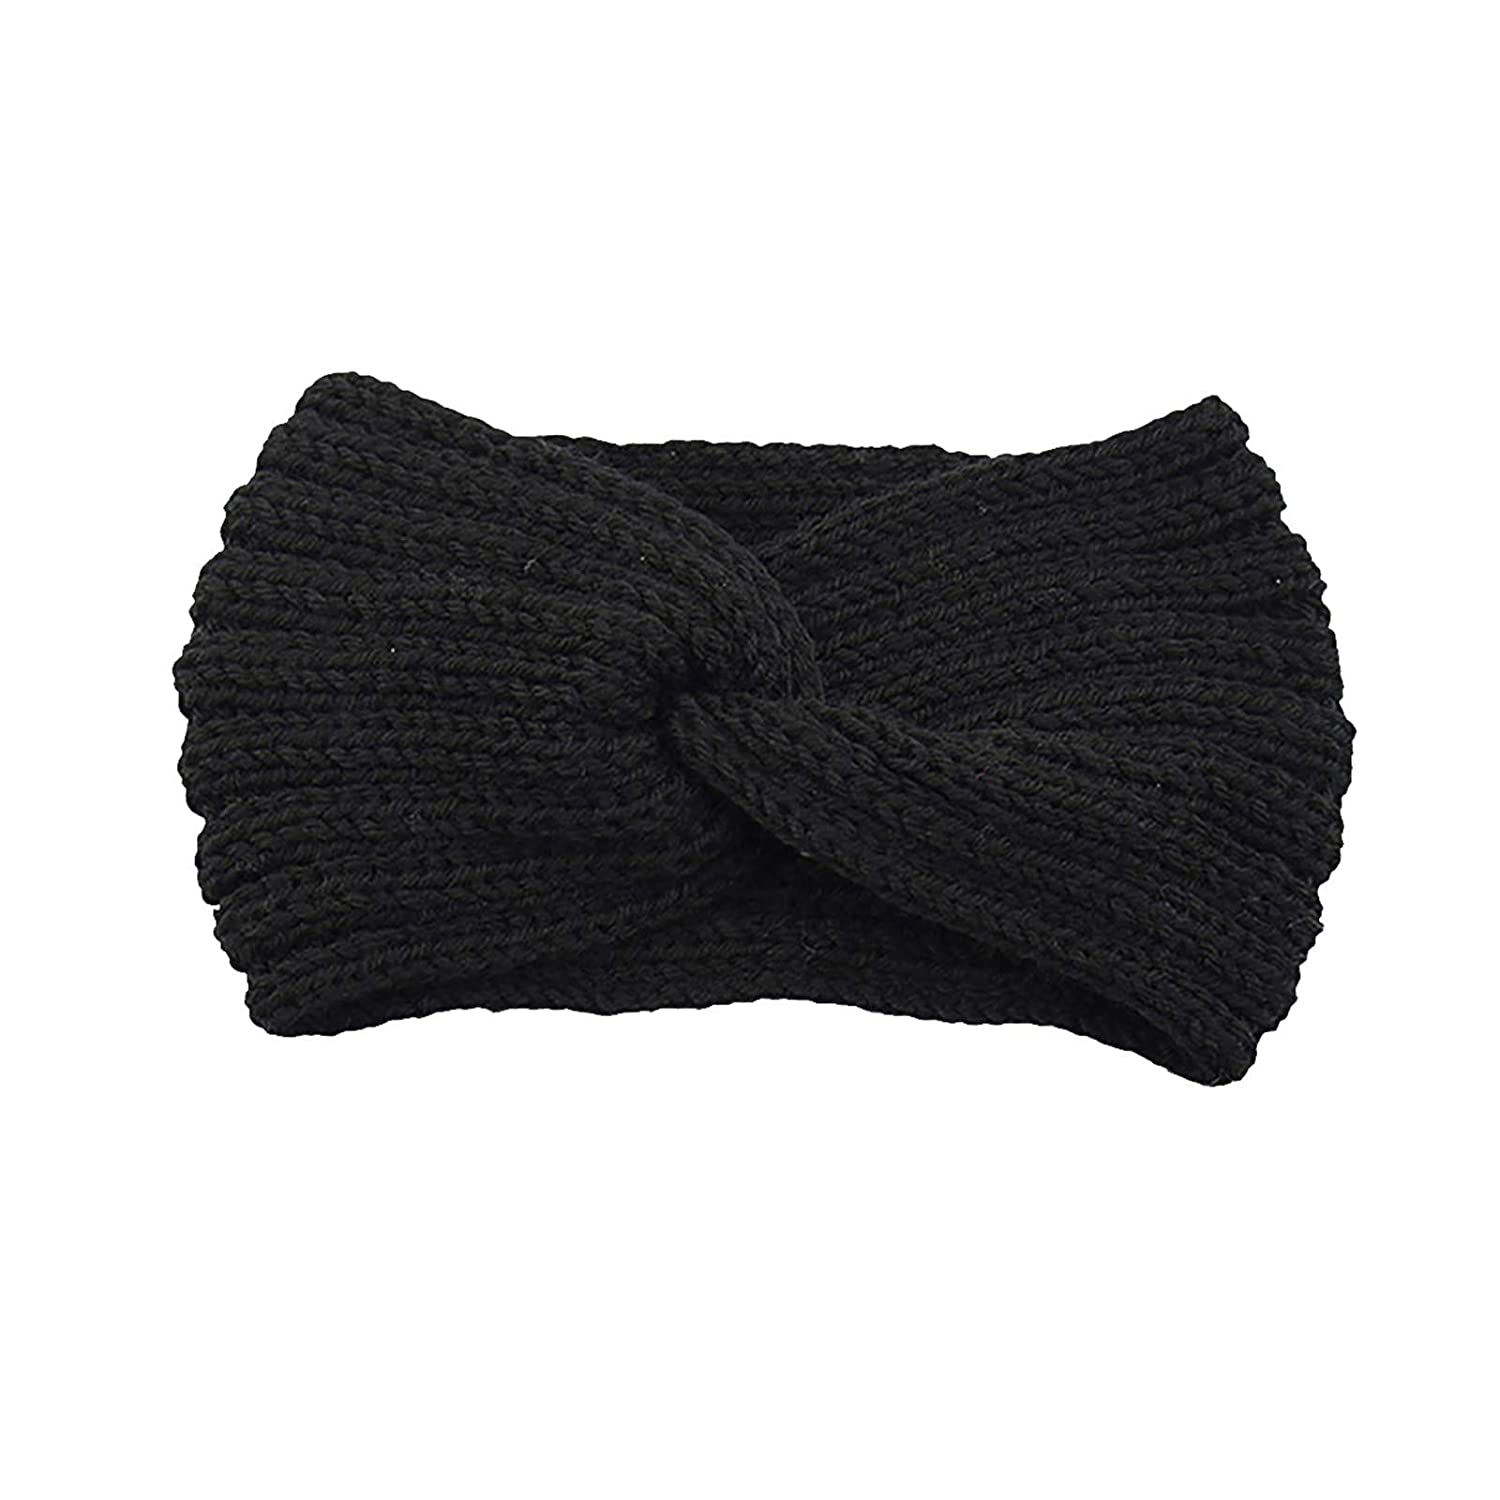 Thatso Winter Headbands for Women, Ear Warmer Headband with Buttons, Soft Stretchy Thick Cable Knitted Turban Hairband Gift (Black,One Size)